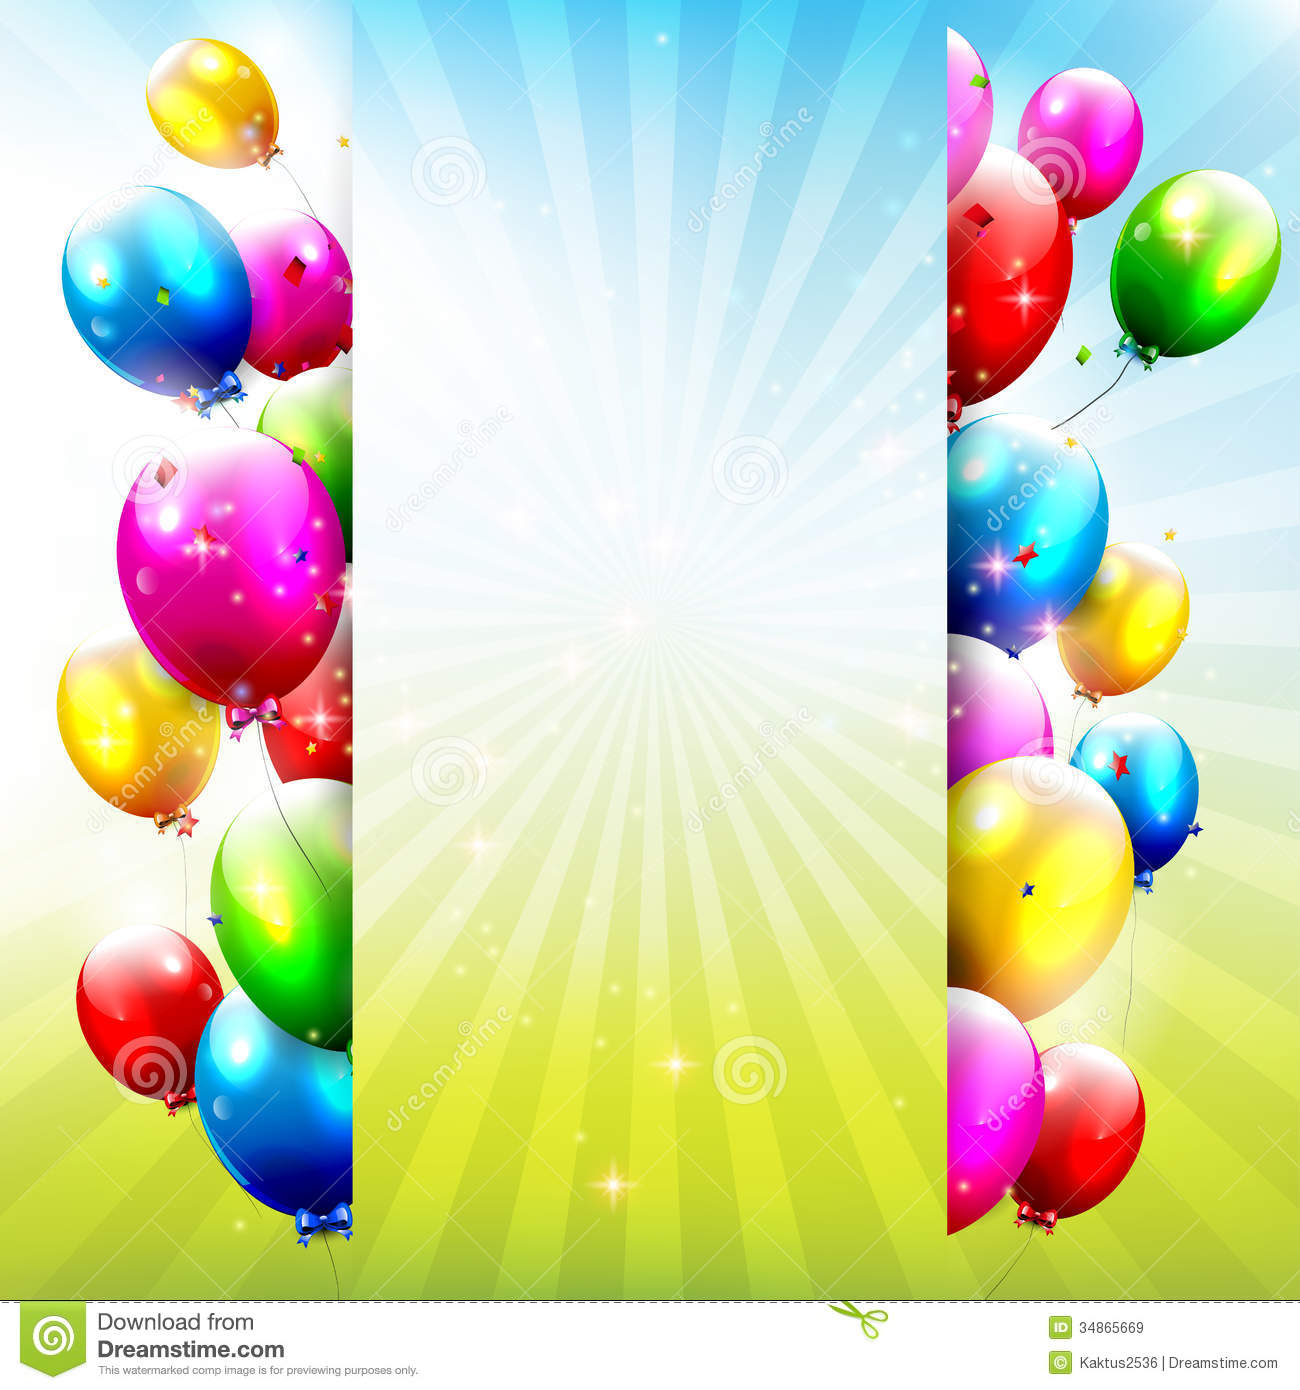 birthday background hd wallpapers ; birthday-balloons-background-colorful-place-text-34865669